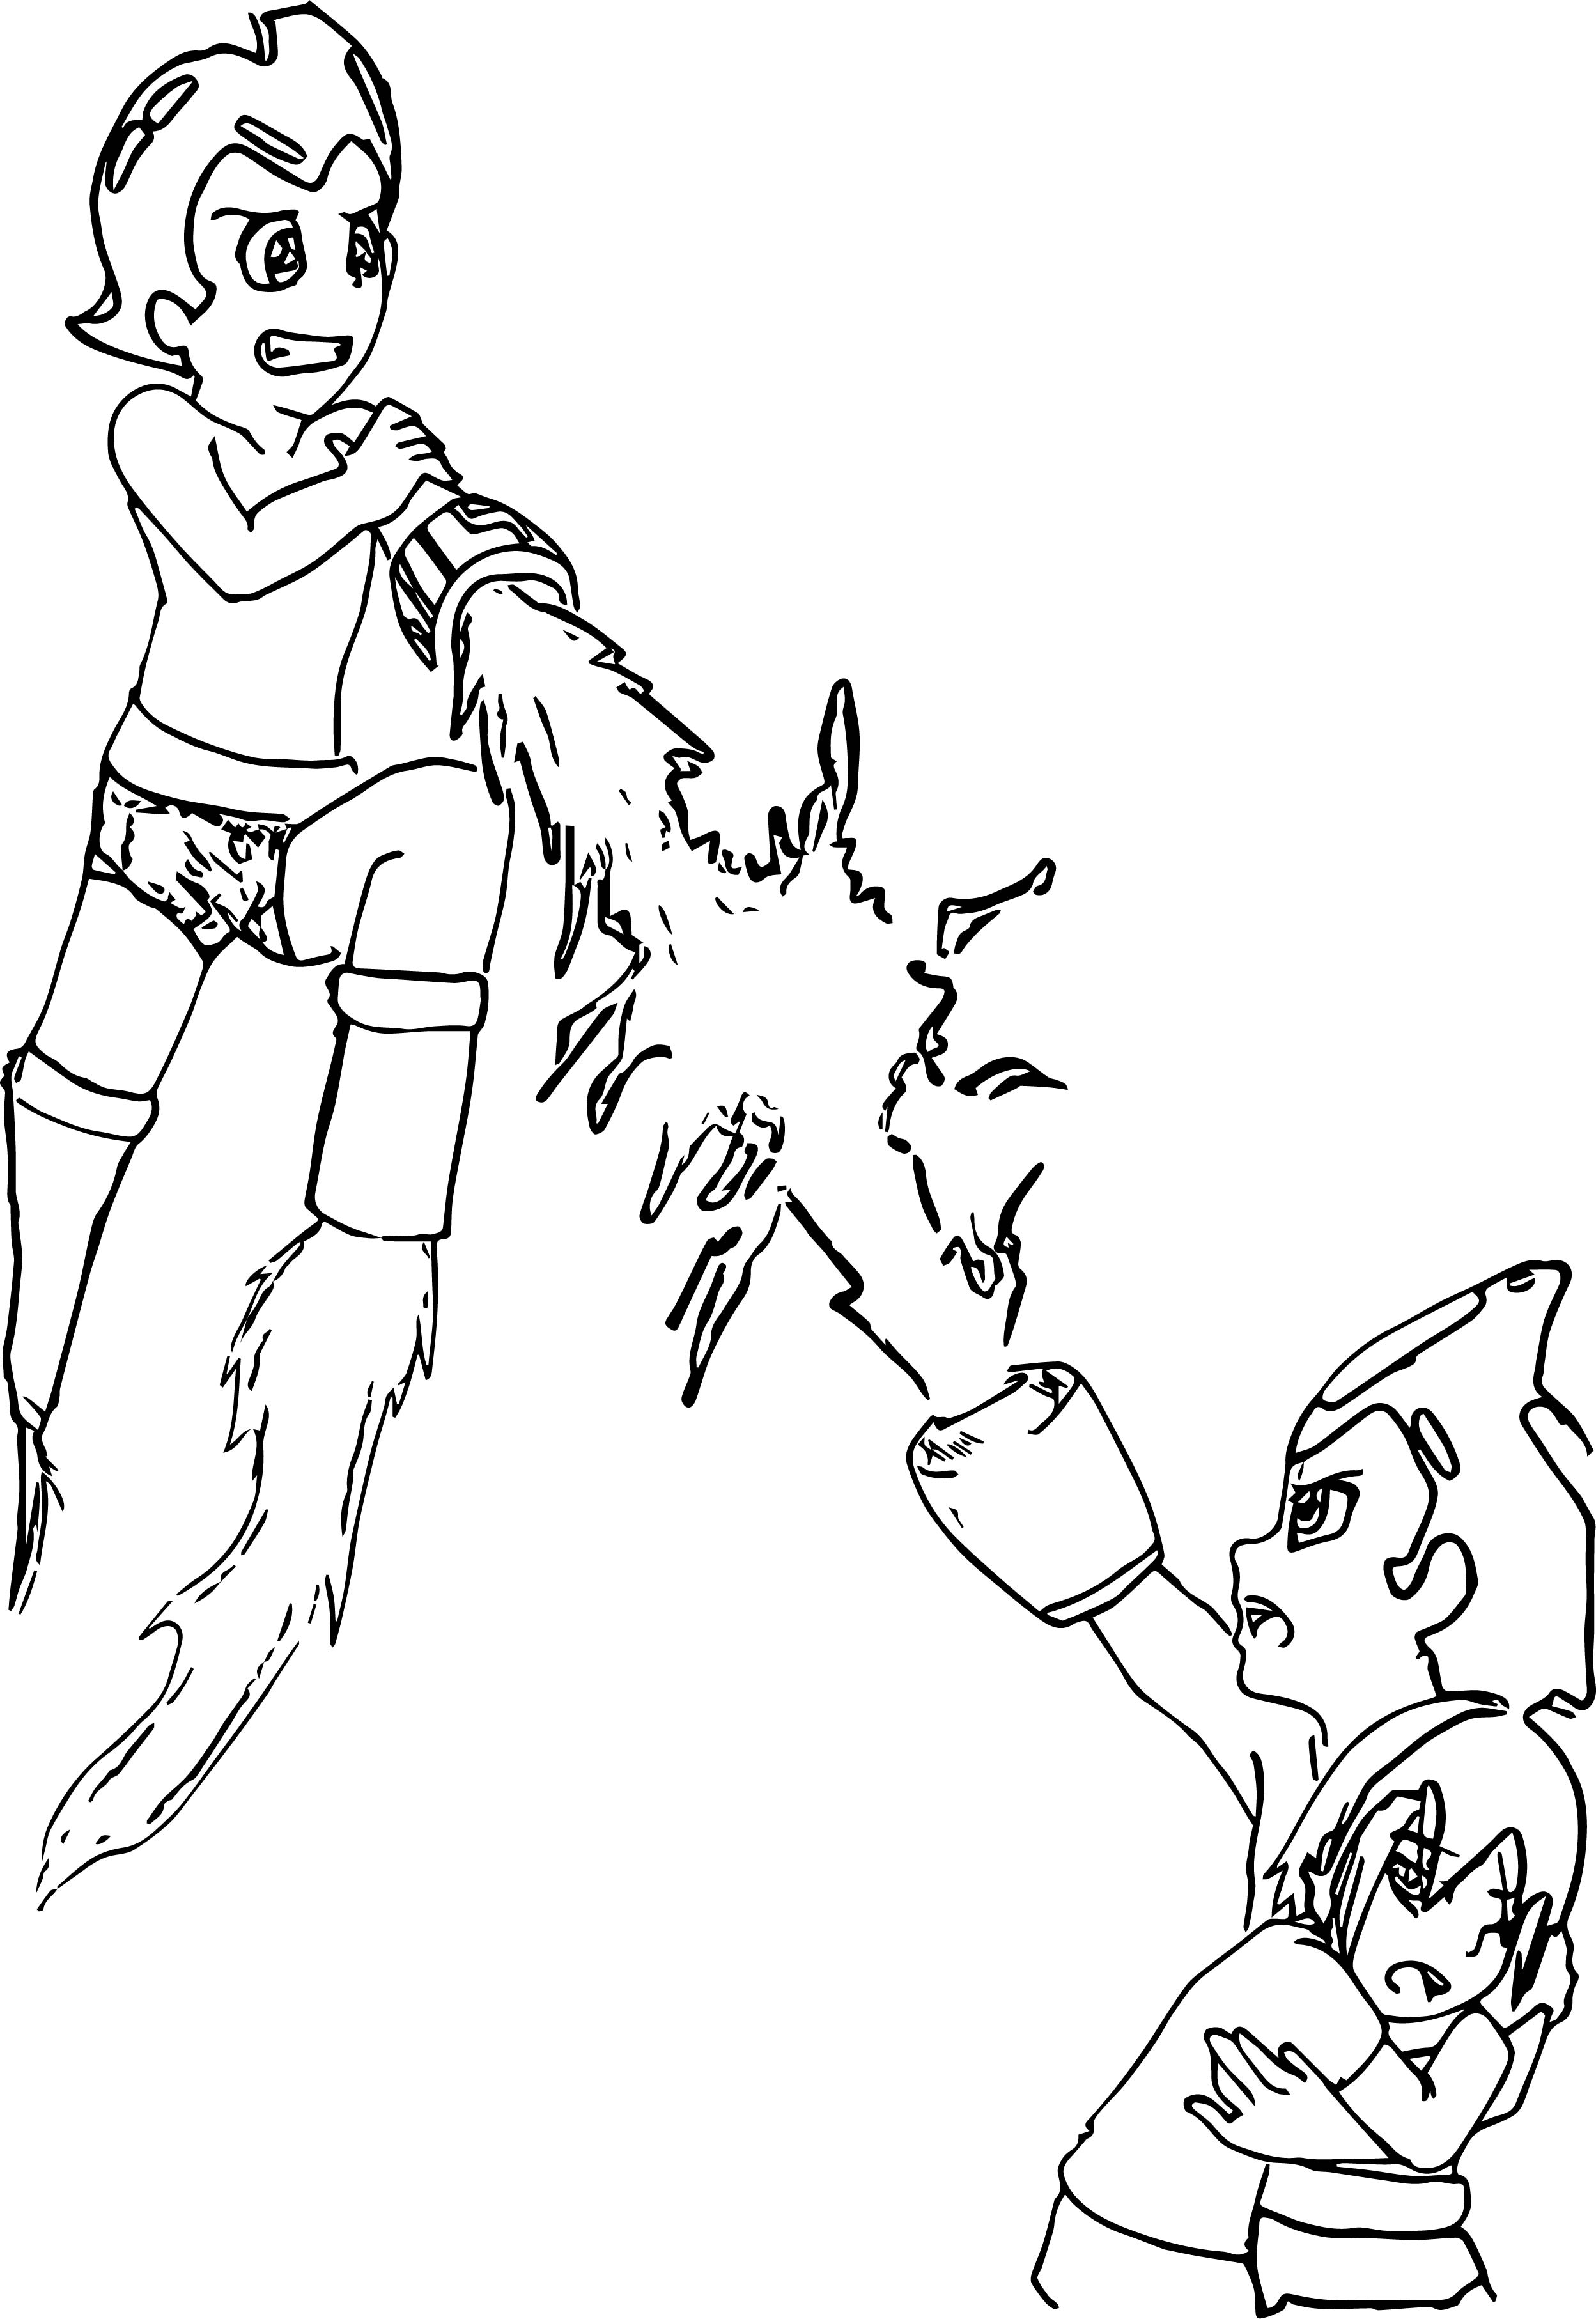 Astro Boy Red Core War Coloring Page